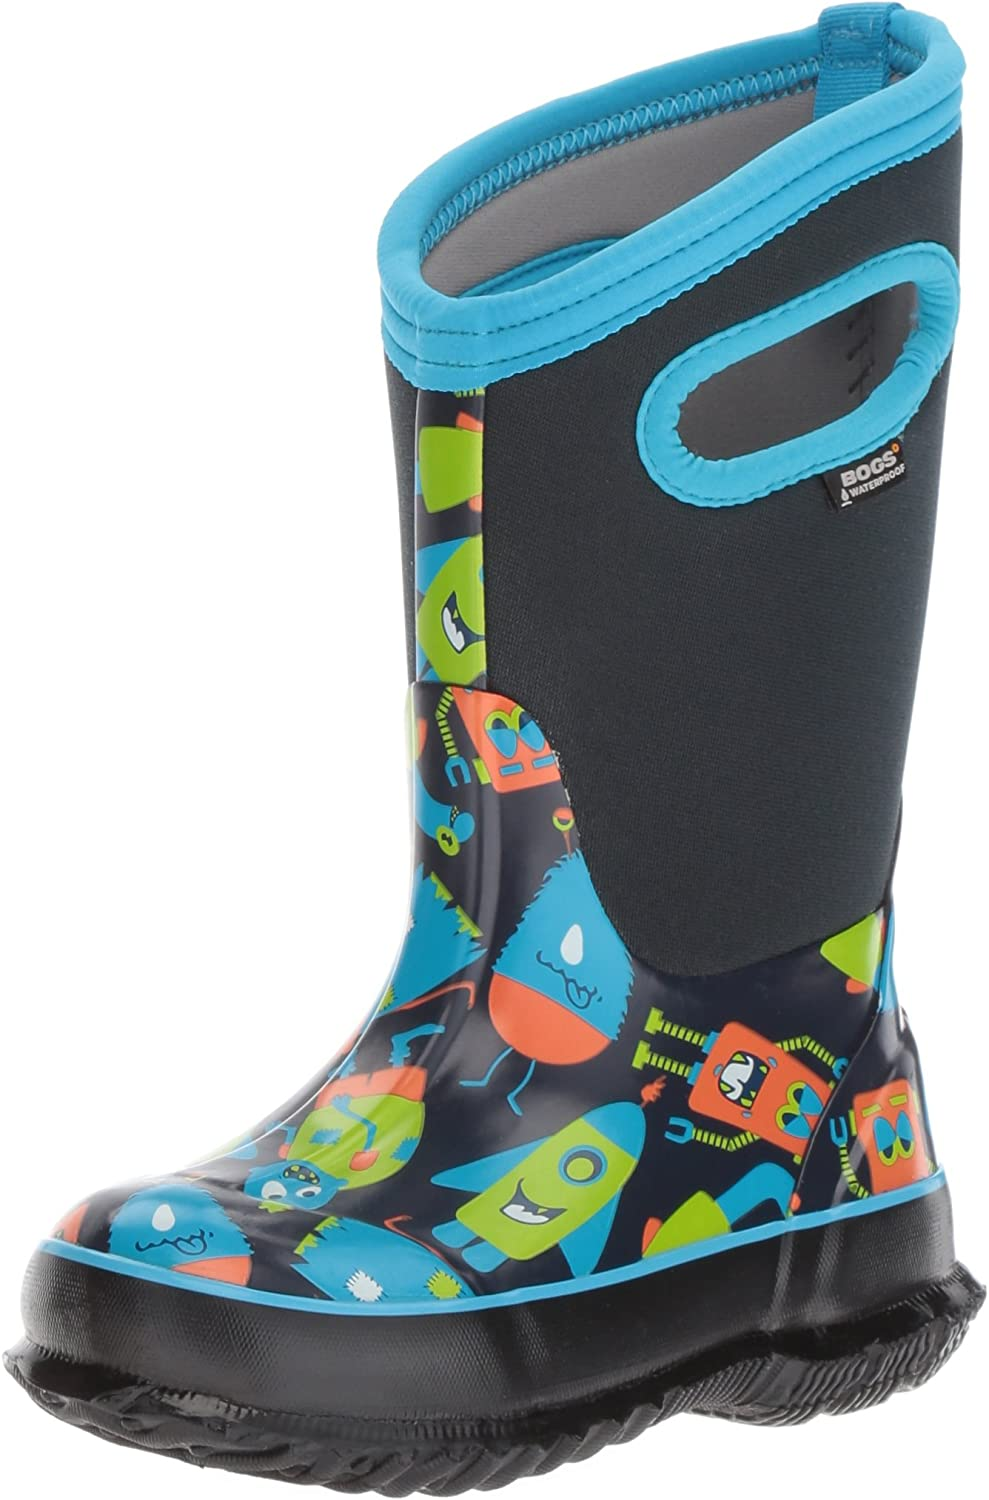 BOGS Unisex-Child Classic High Waterproof Insulated Rubber Neoprene Rain Boot